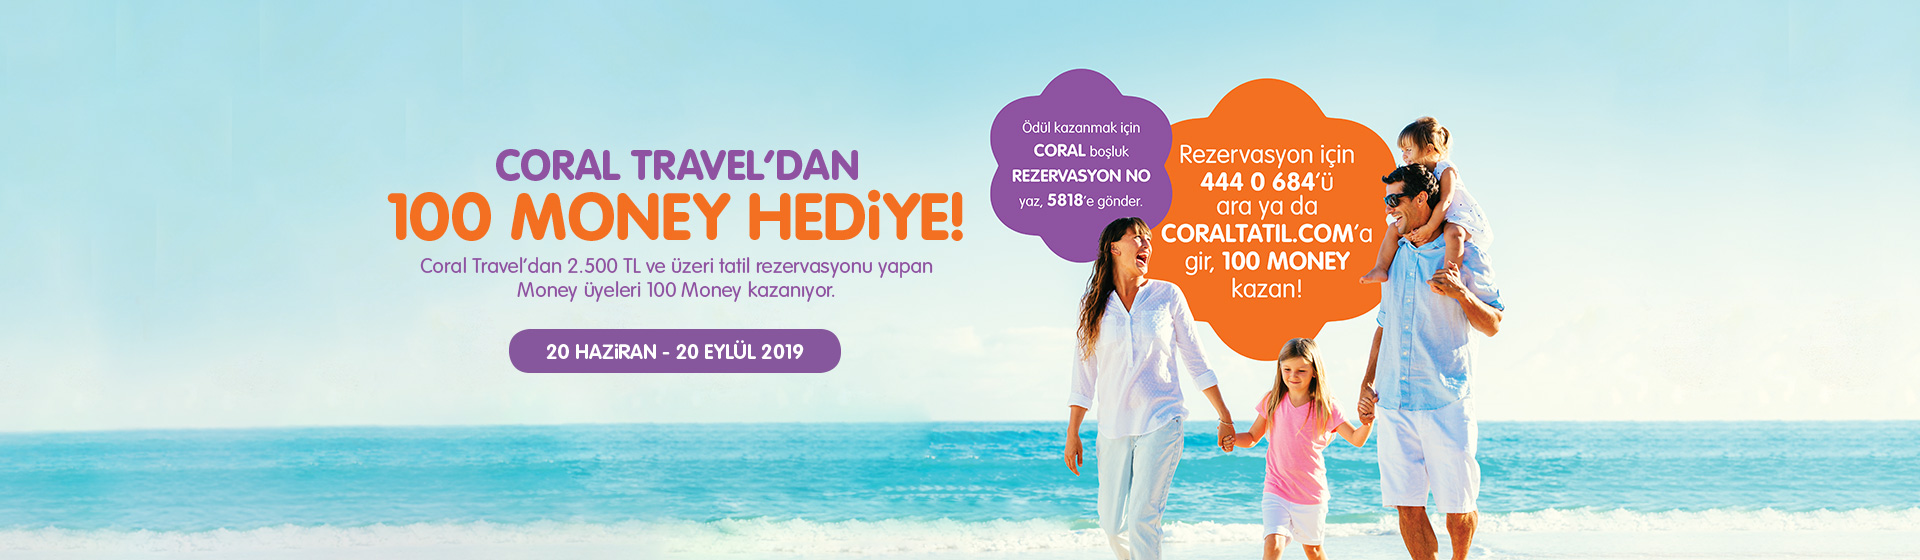 Coral Travel'dan 100 Money Hediye!